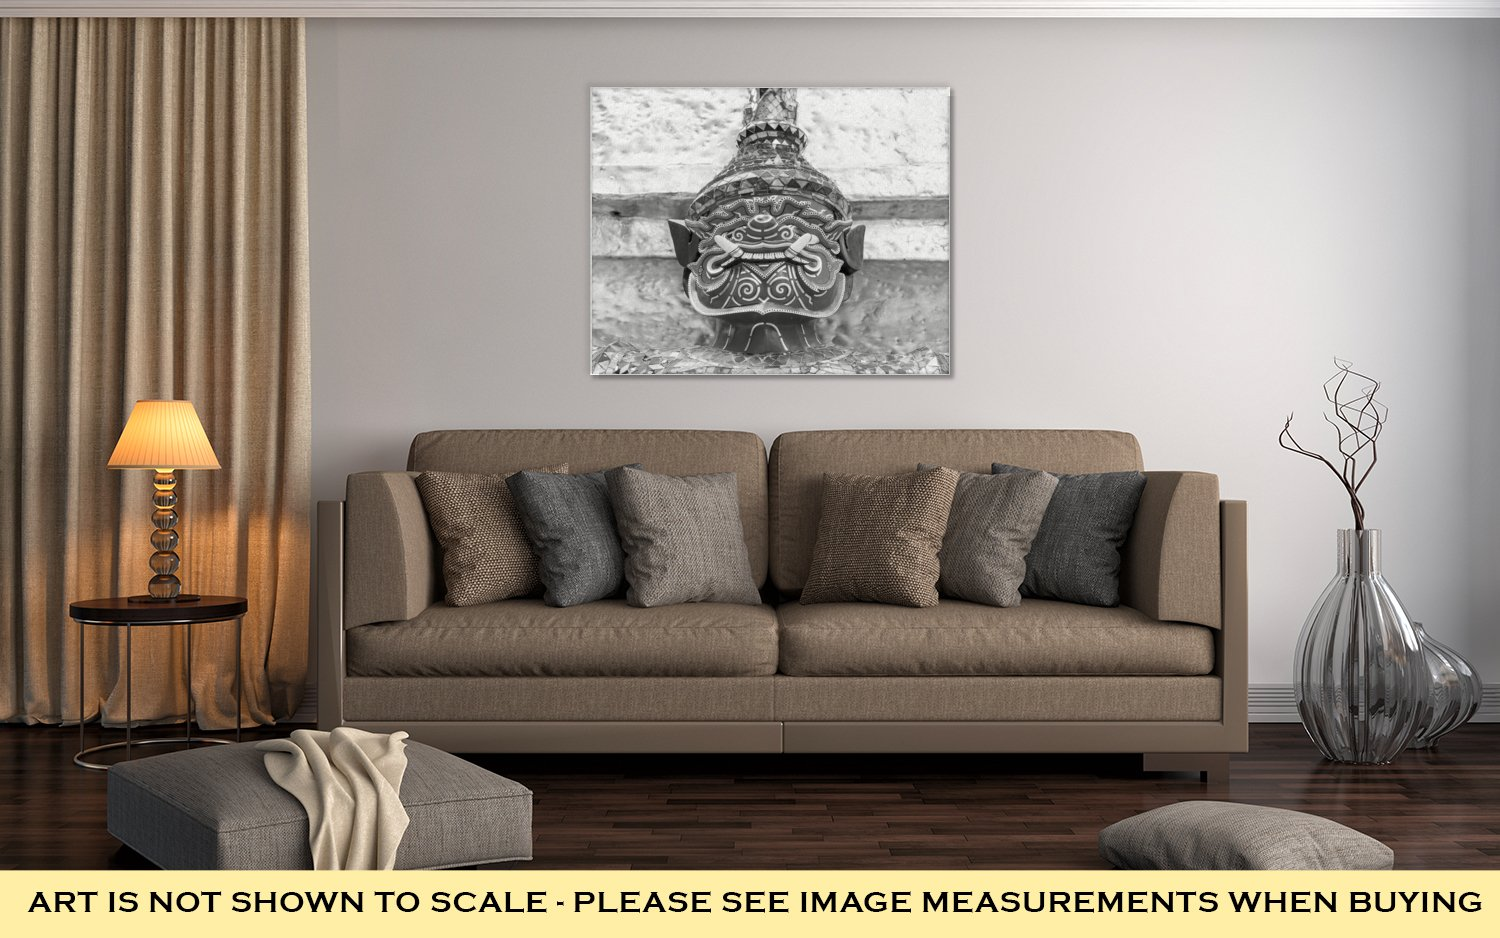 Ashley Canvas Old Faithful Close Up Thai Giant Statue Golden Pagodat Grand, Wall Art Home Decor, Ready to Hang, Black/White, 16x20, AG5593660